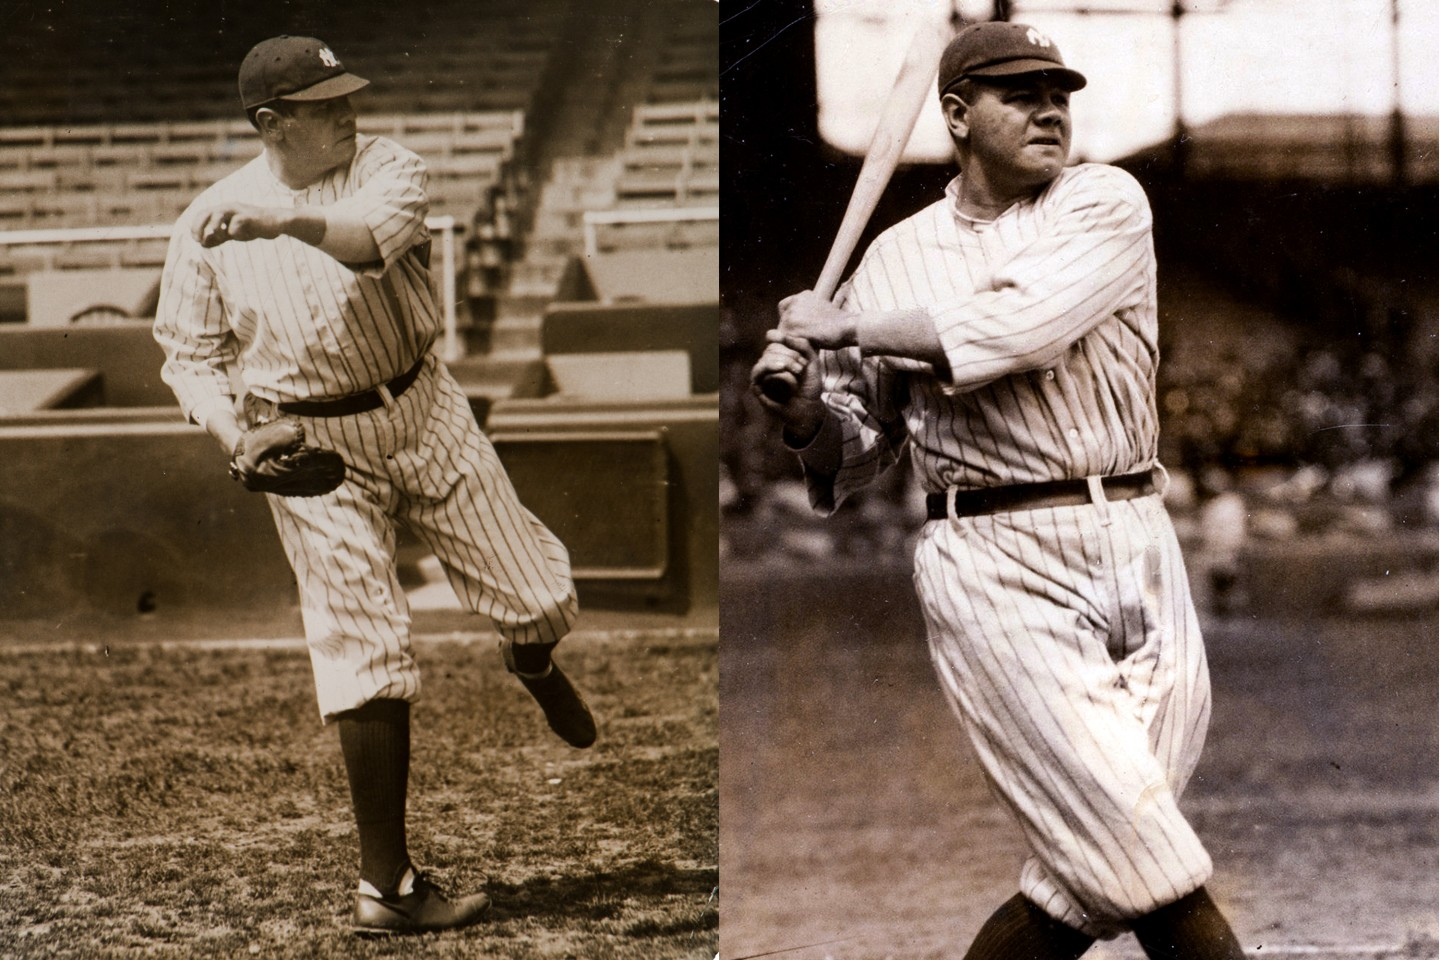 Babe Ruth began his professional career as a pitcher, transforming into a batting phenomenon whose name is still revered a century later. Not only does Babe Ruth dominate Baseball Memorabilia prices at auction, he also dominates global sports memorabilia at auction with more than 20 percent of the top 100 most valuable items ever sold.